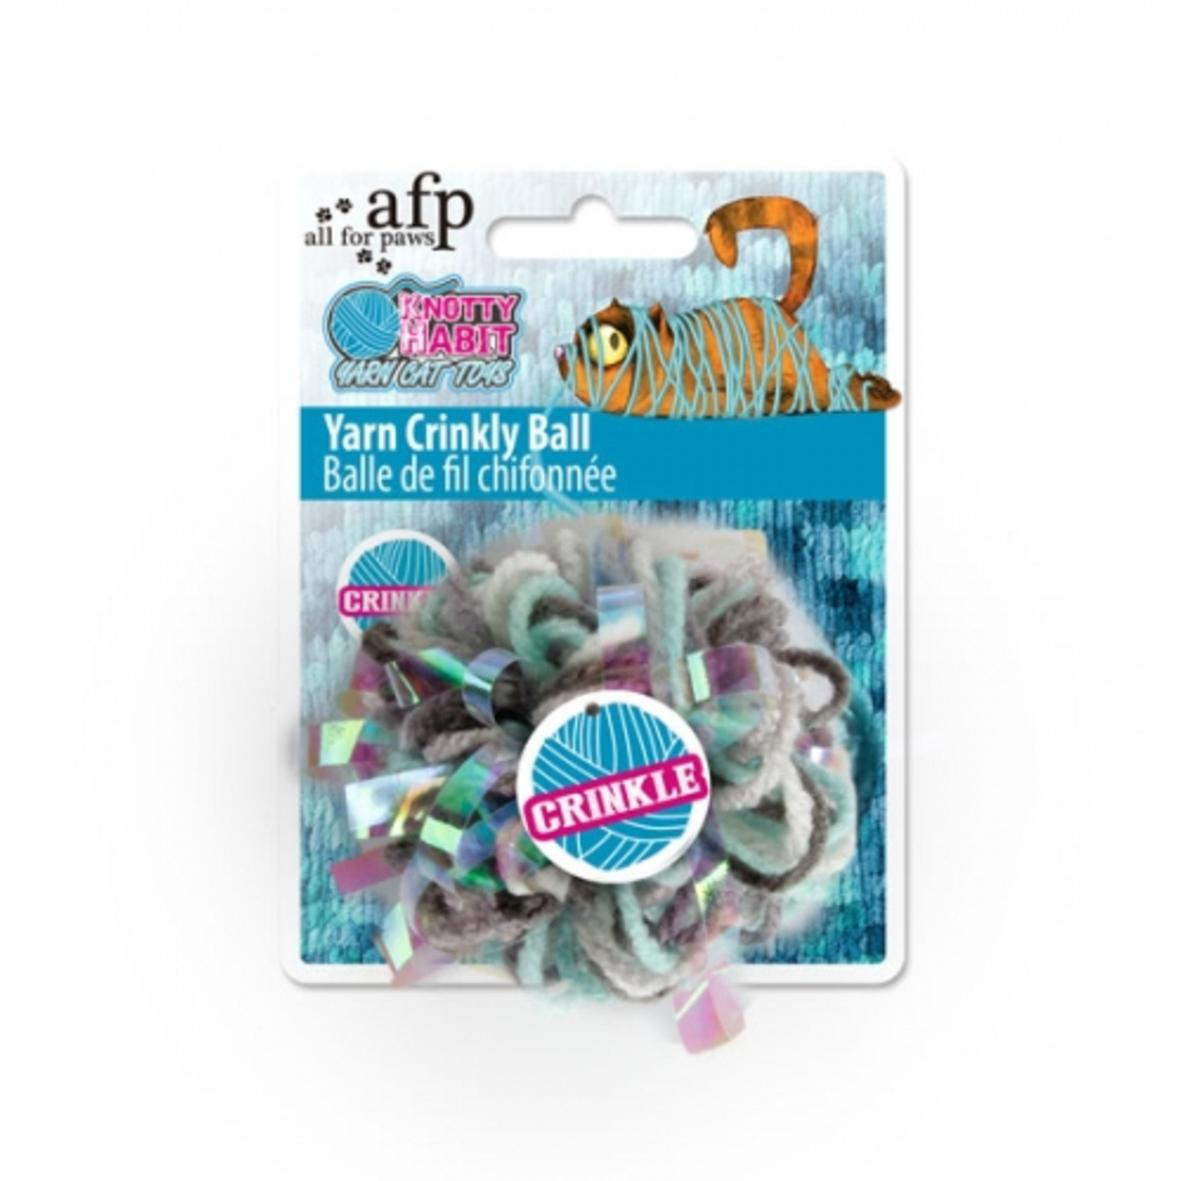 All for Paws Yarn Crinkly Ball 7cm